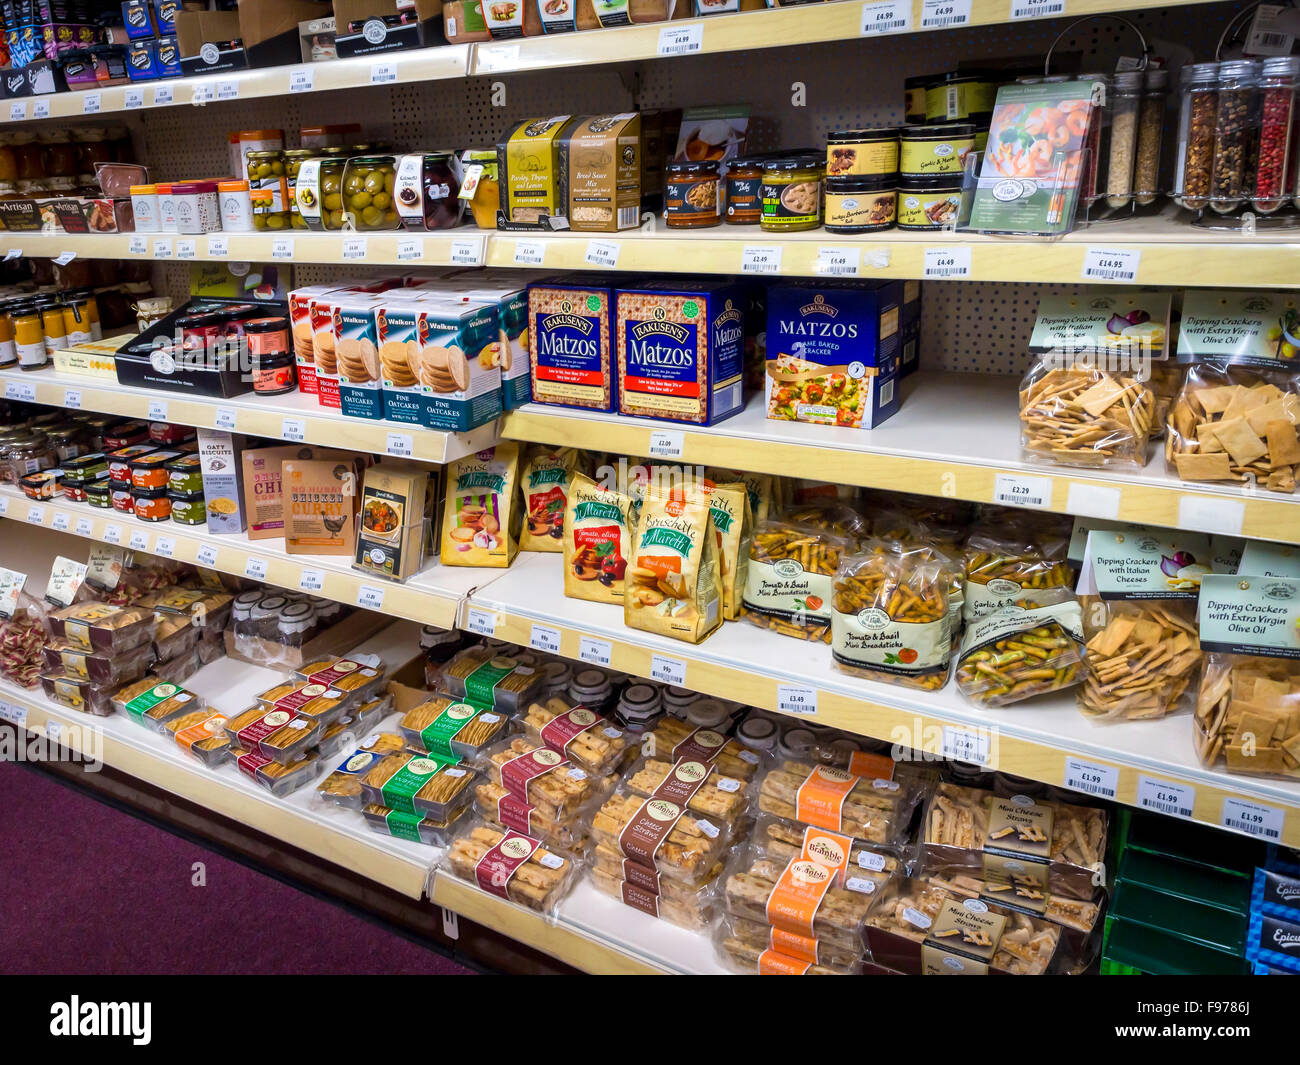 Garden Centre food department in North Yorkshire England UK display of savoury biscuits and pickles - Stock Image